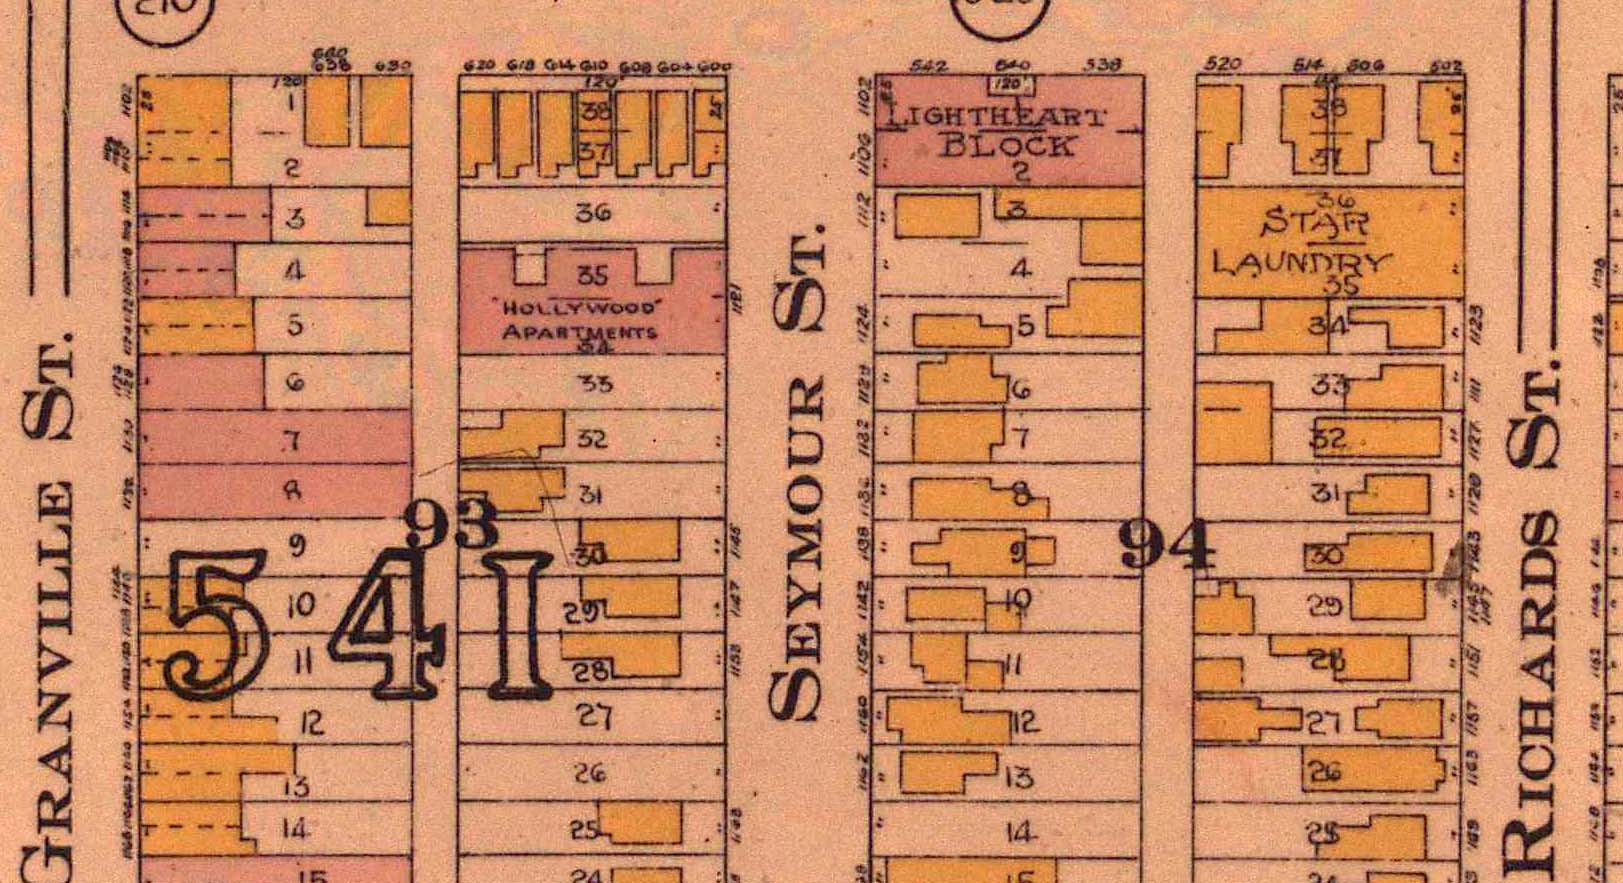 Screenshot from a fire insurance plan.